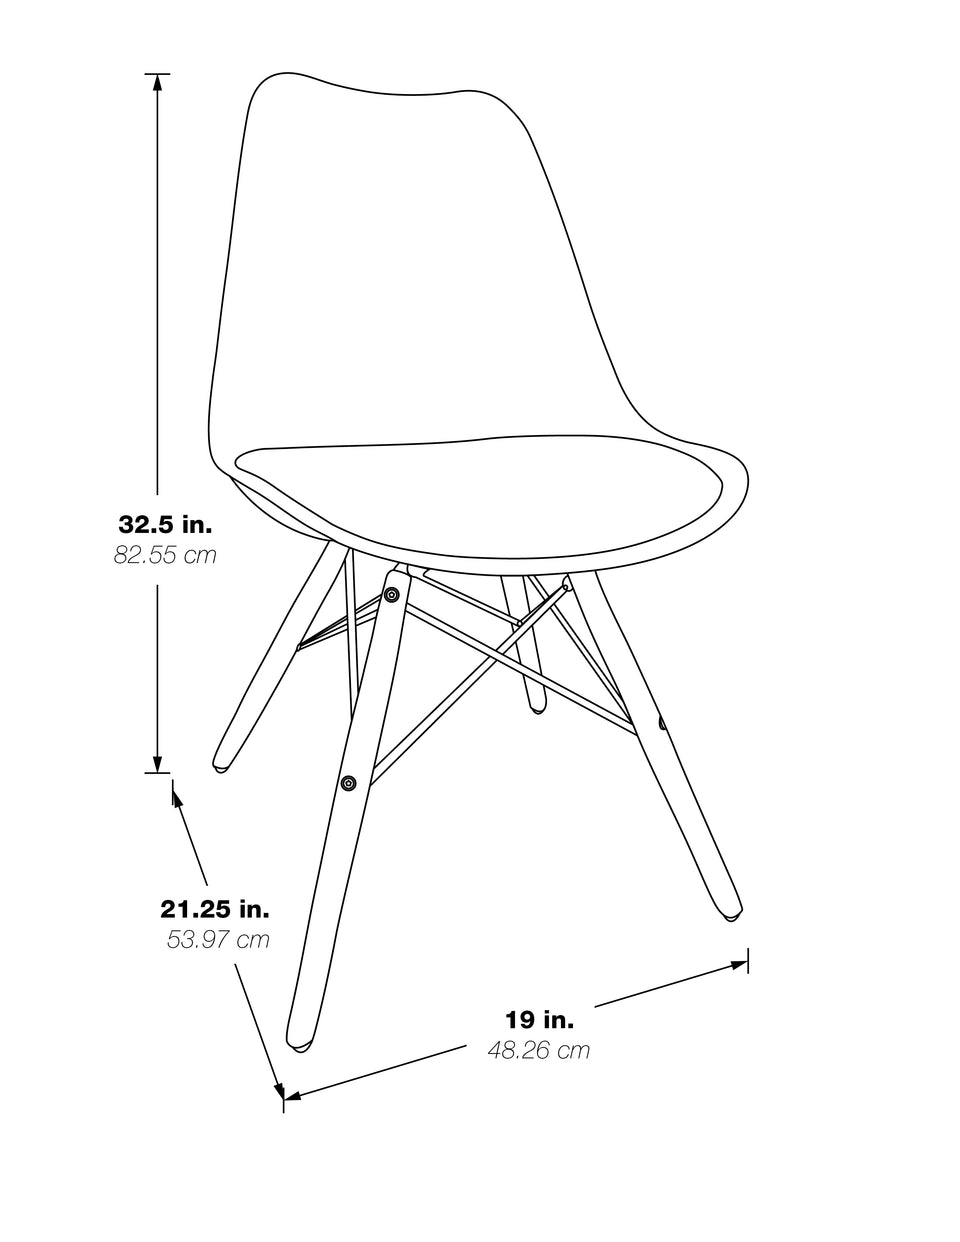 mid century modern aimes bucket chair with natural post legs scandinavian design inspired from decurban.com 3D dimensional drawing showing dimensions